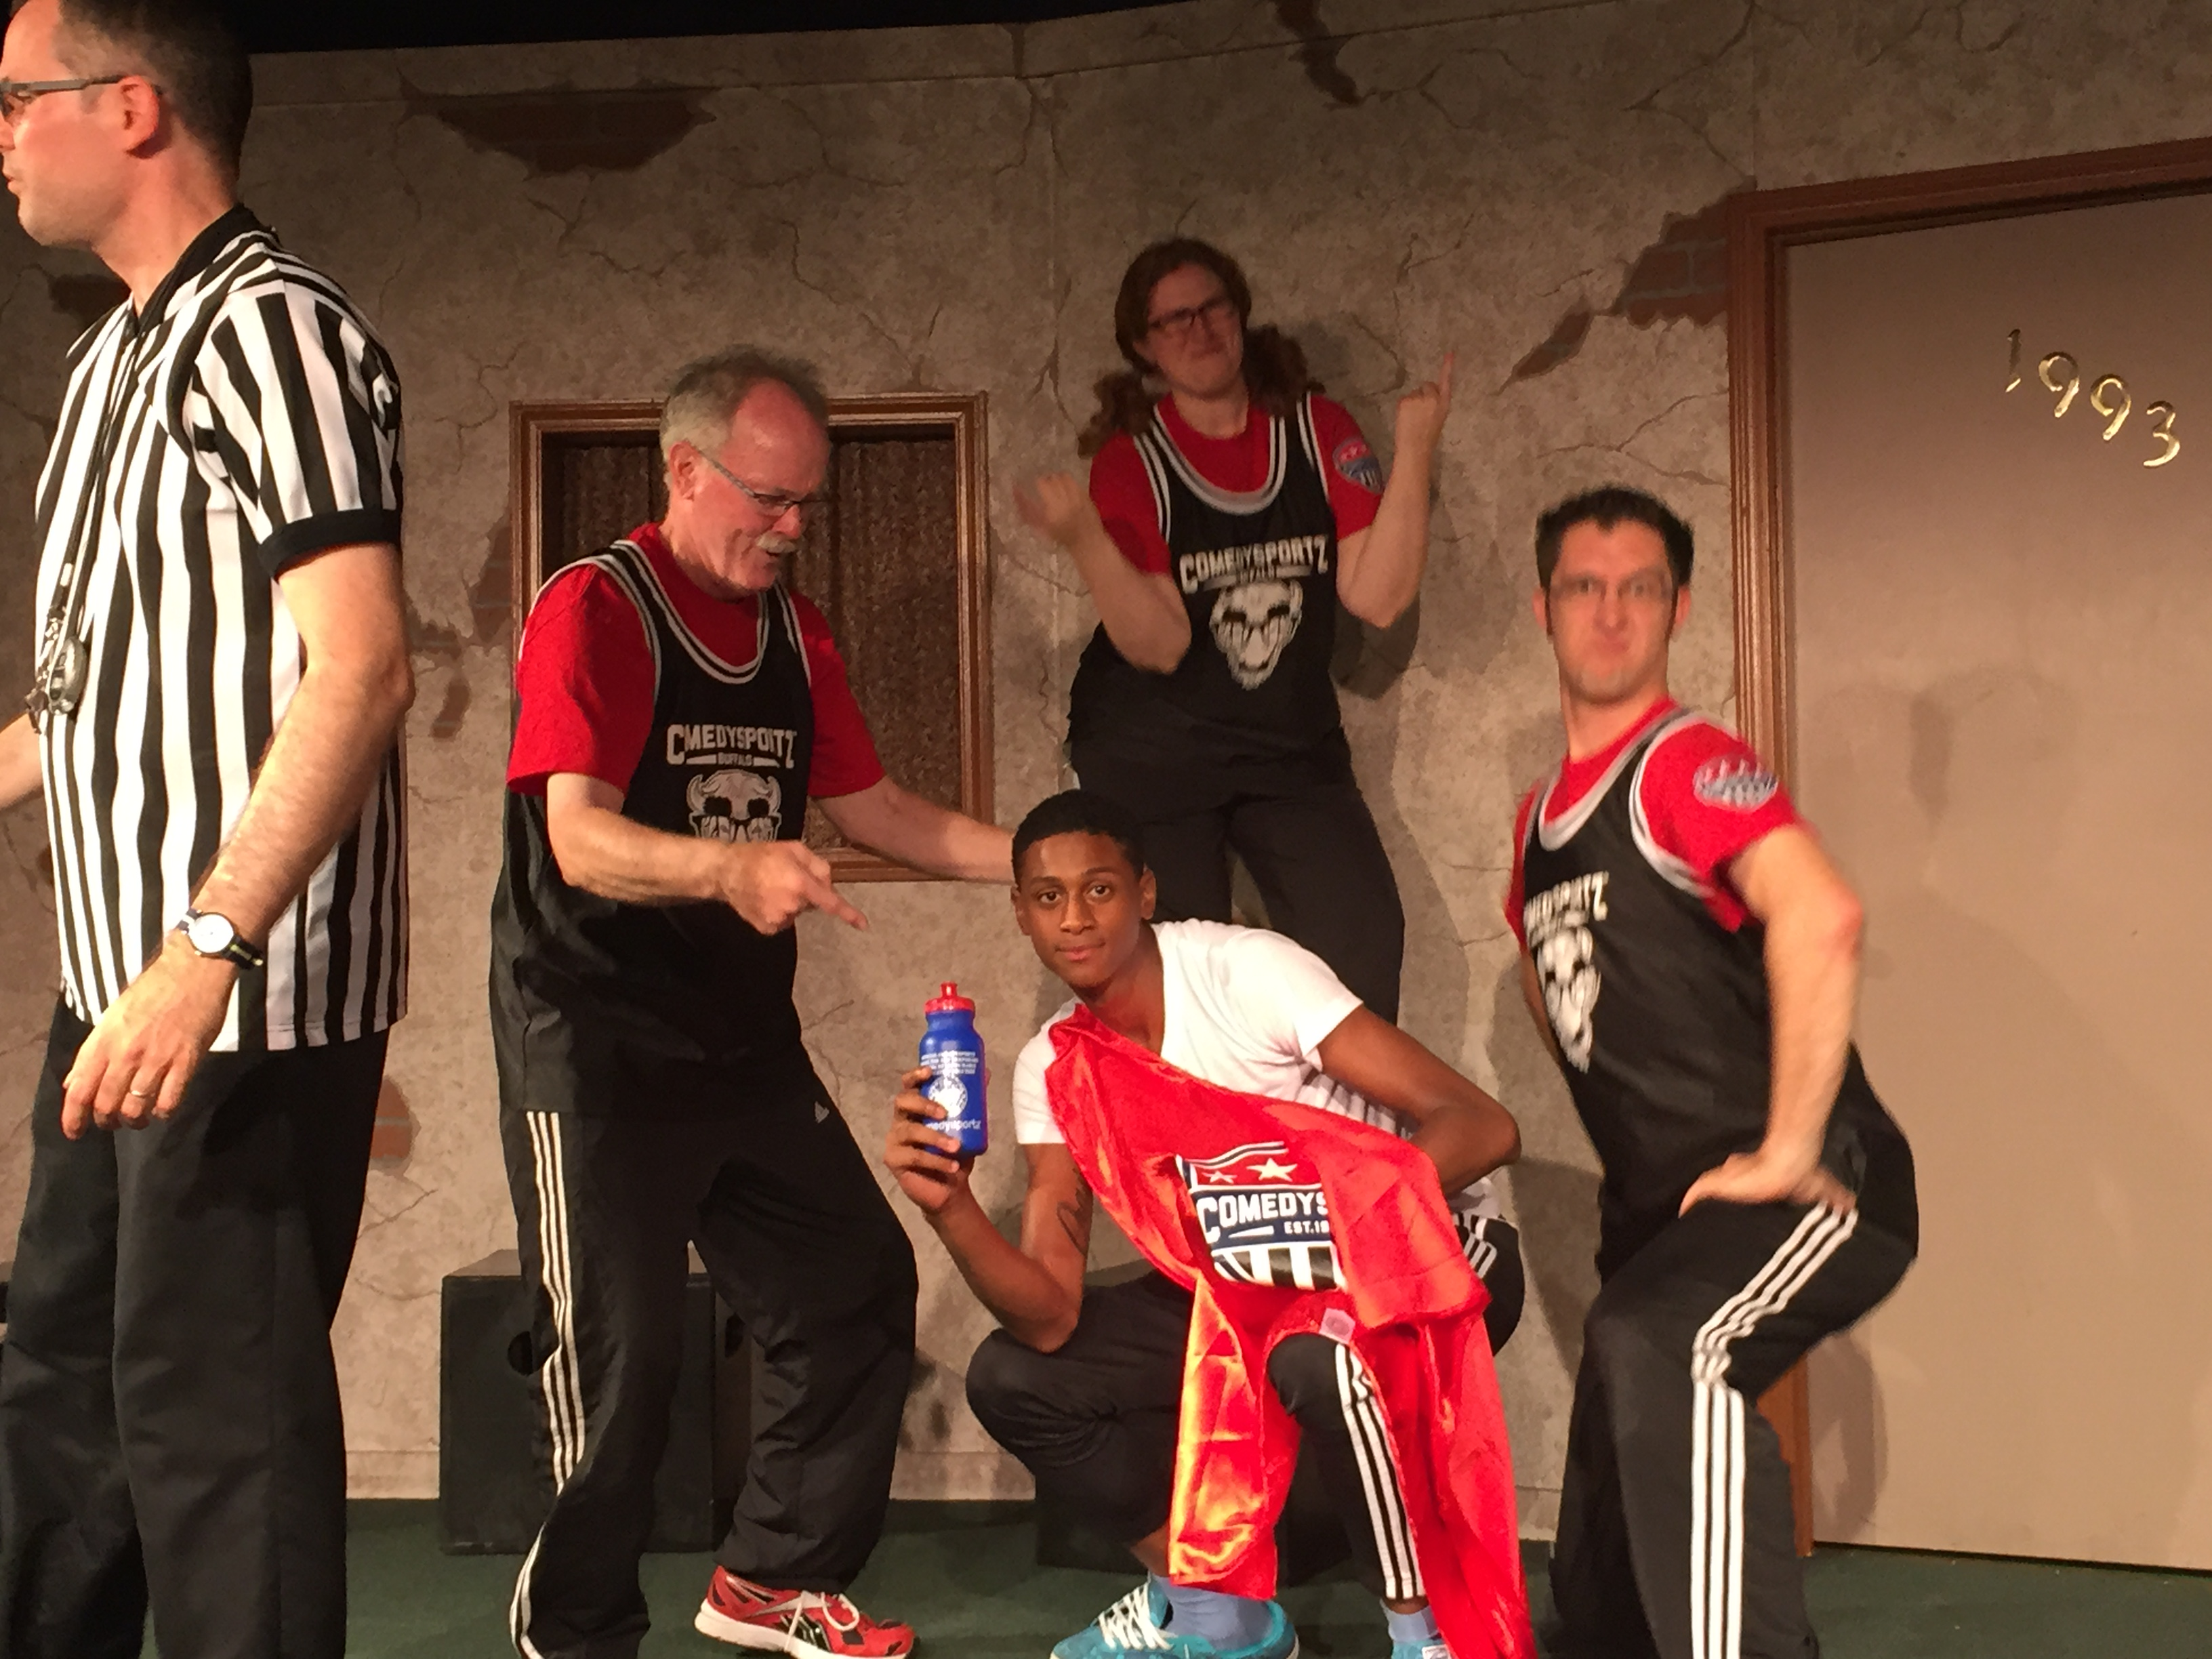 Student participates as actor in improv club